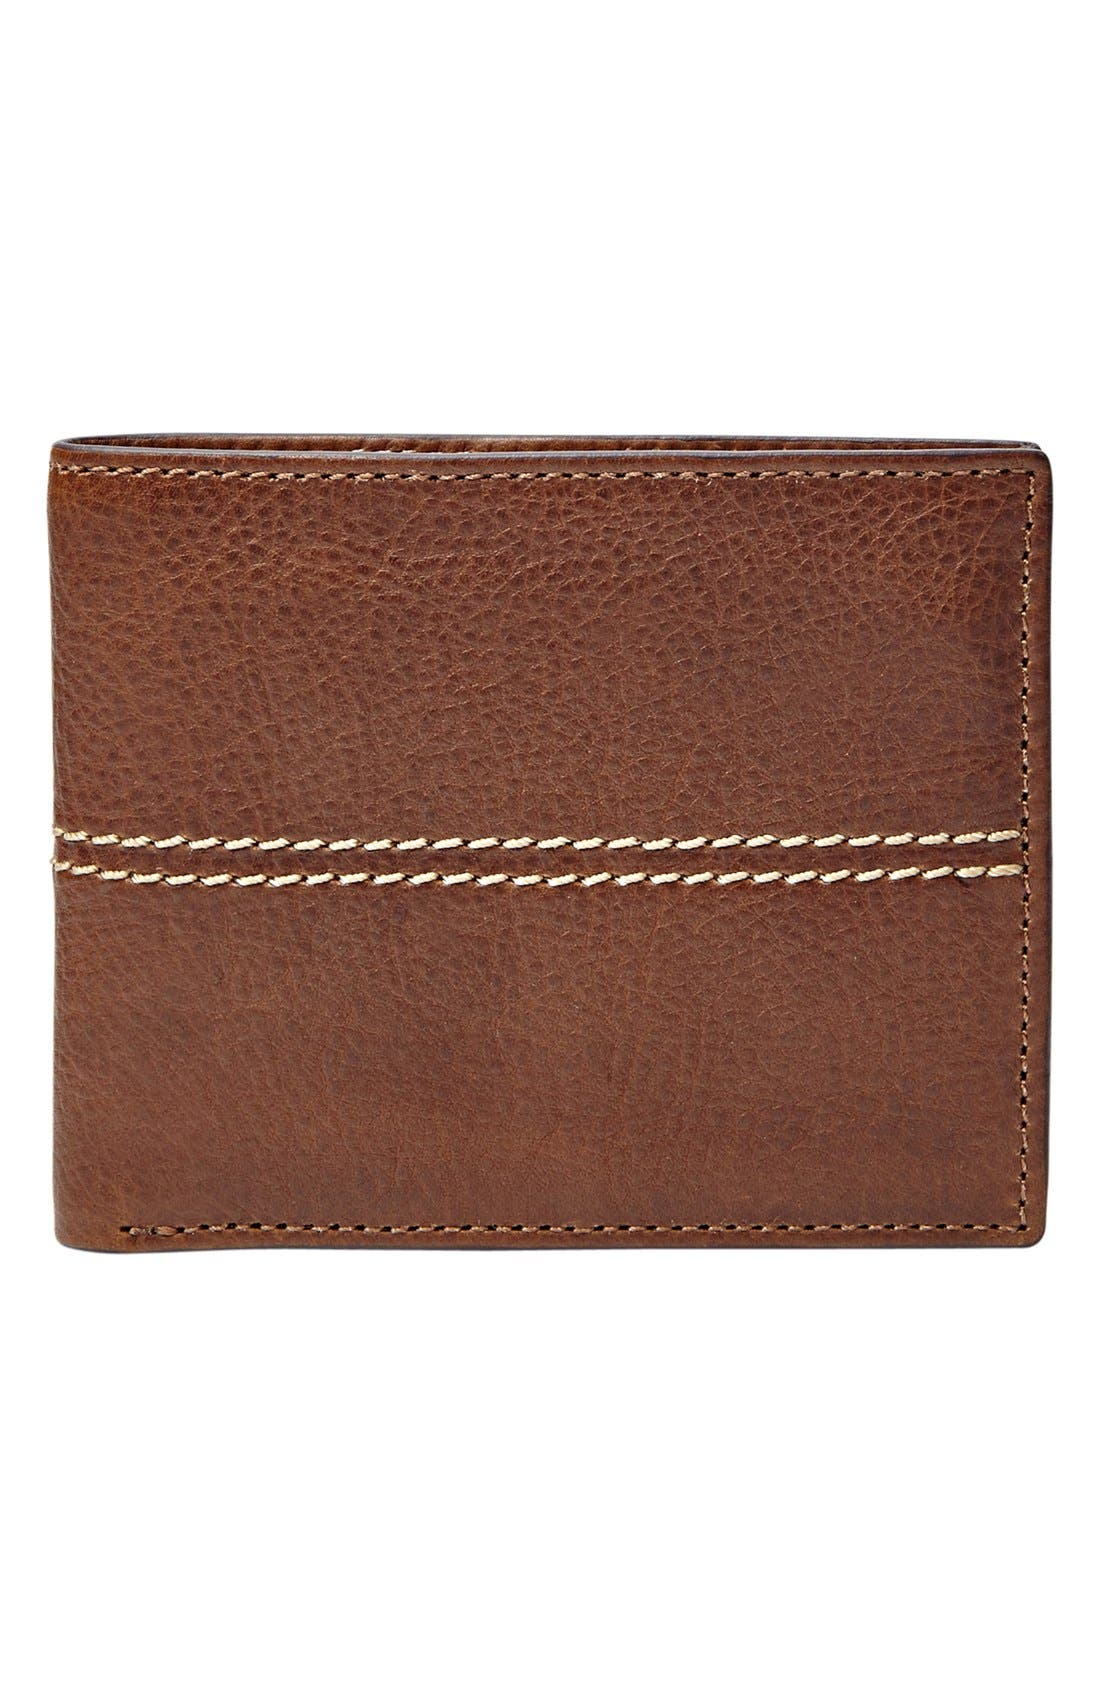 'Turk' Leather RFID Wallet,                         Main,                         color, Brown